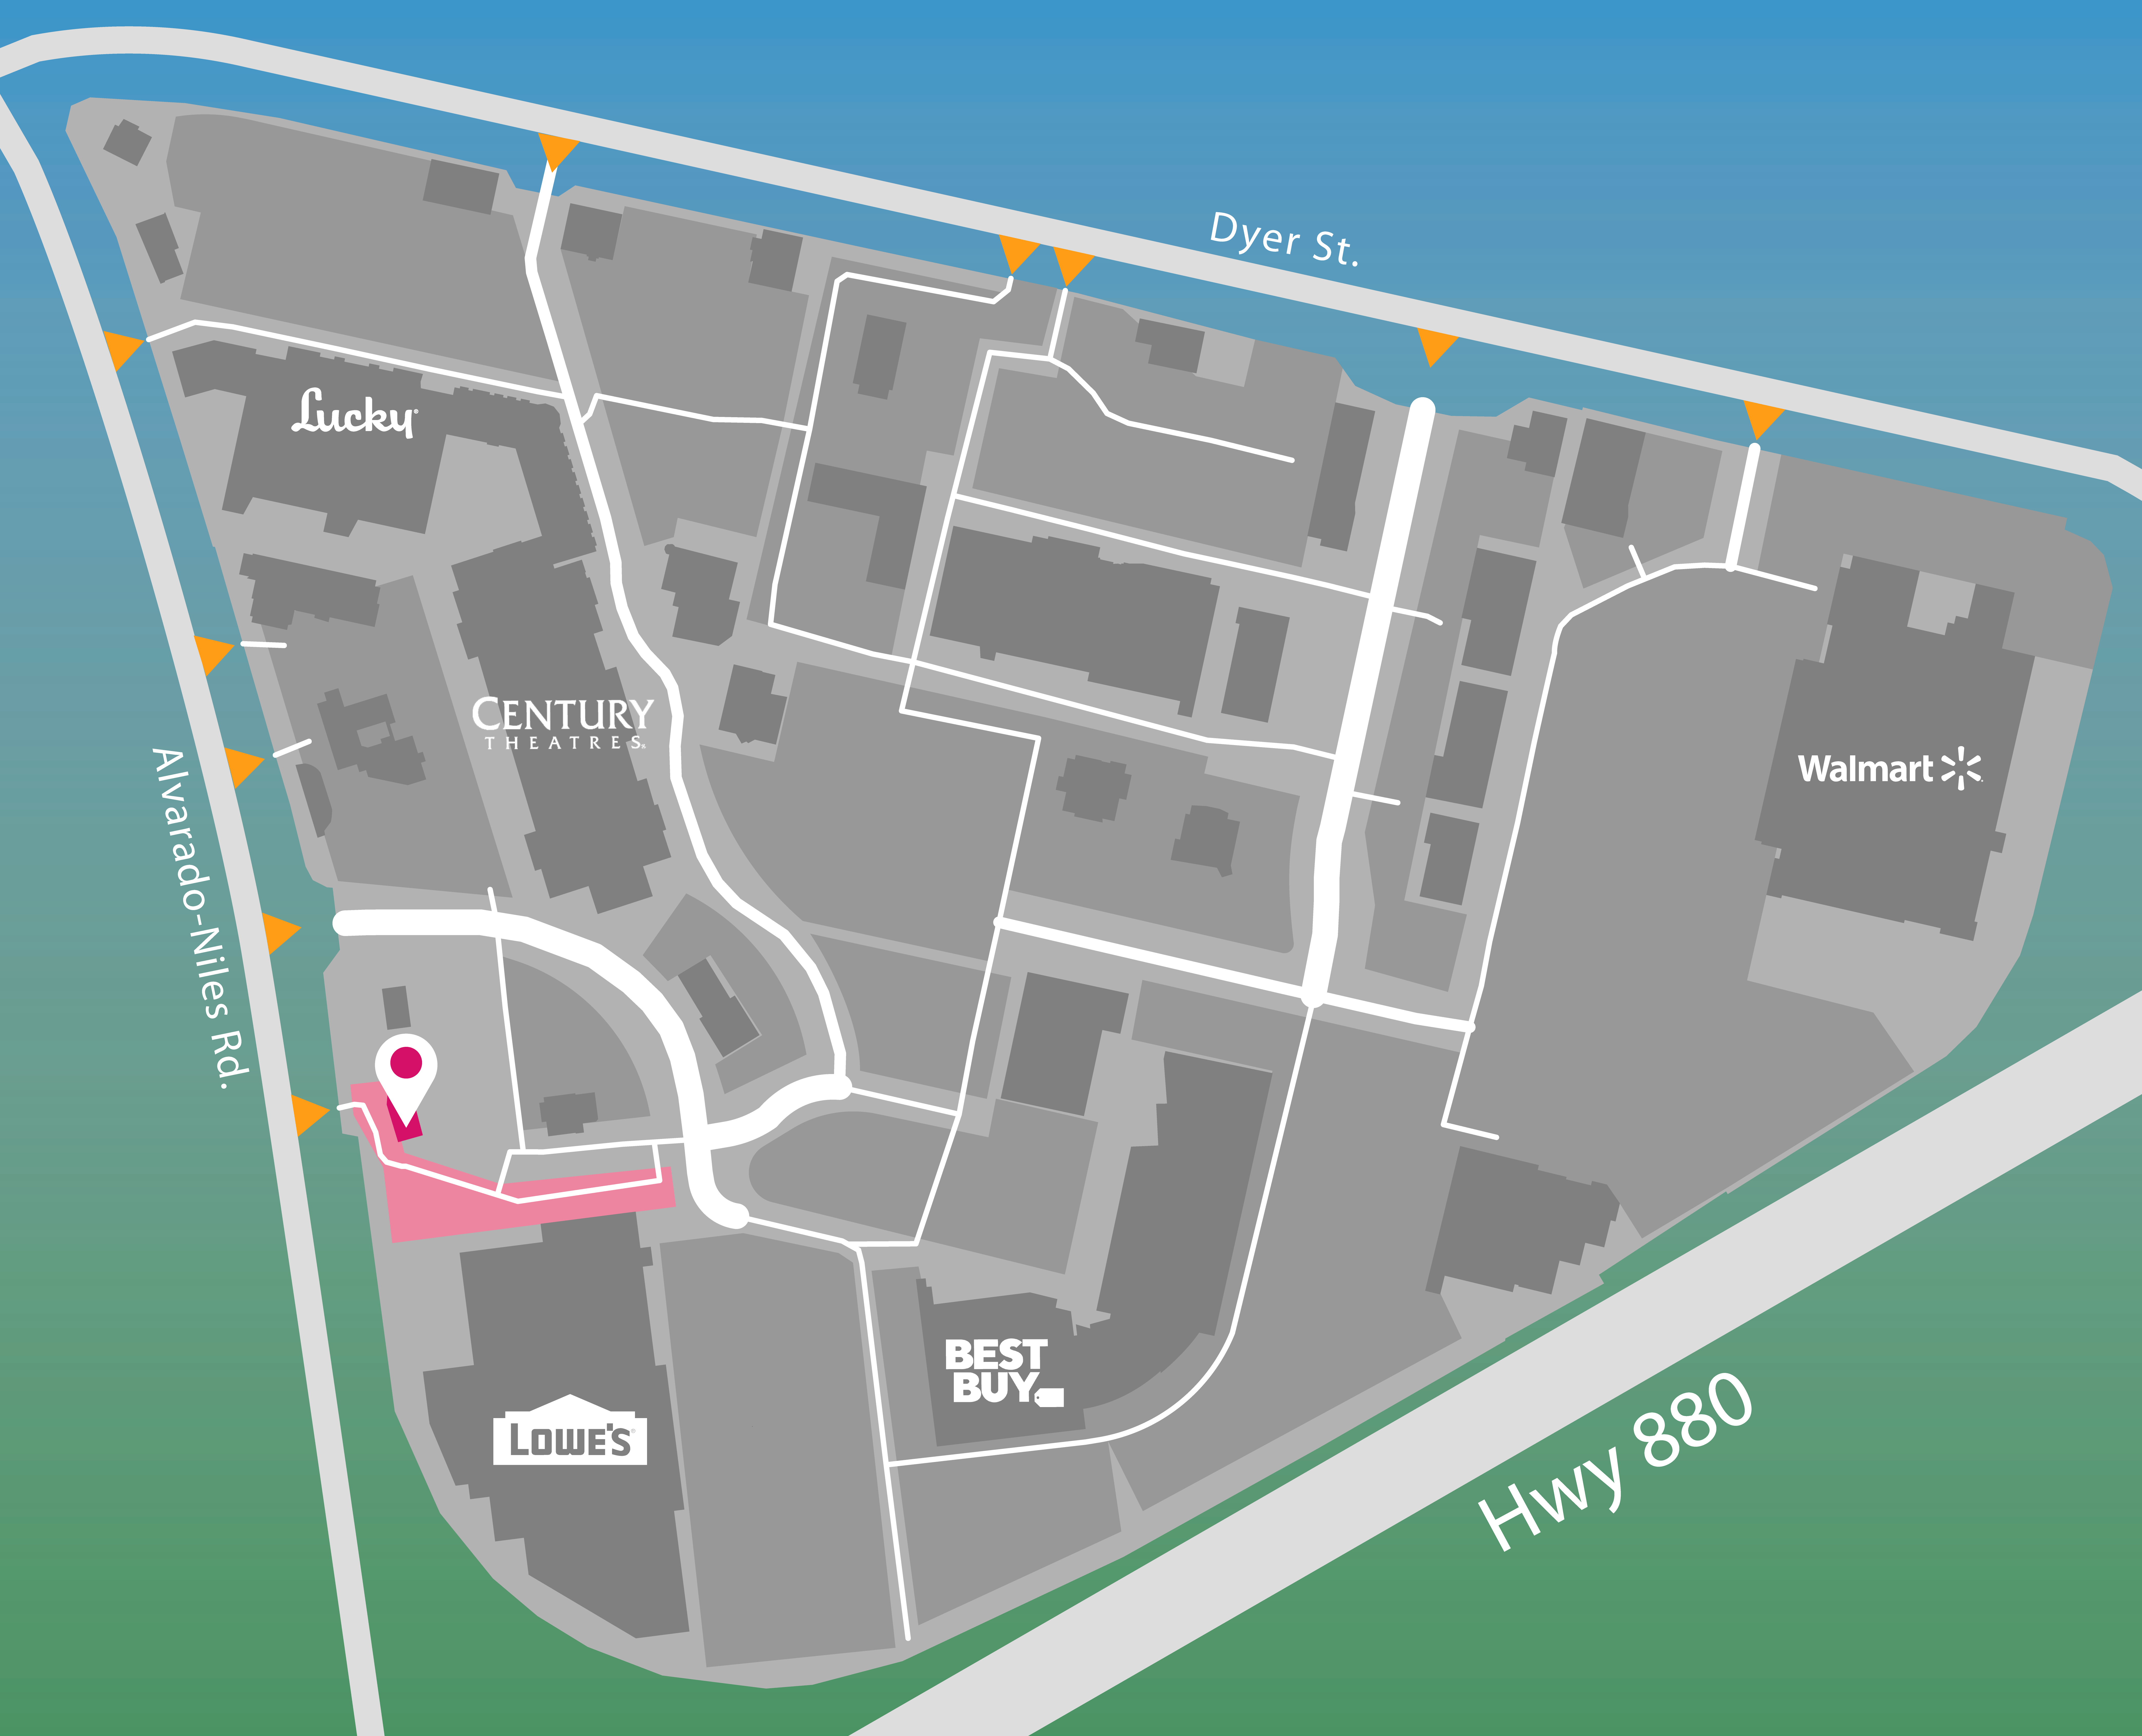 Parking map for iFly.